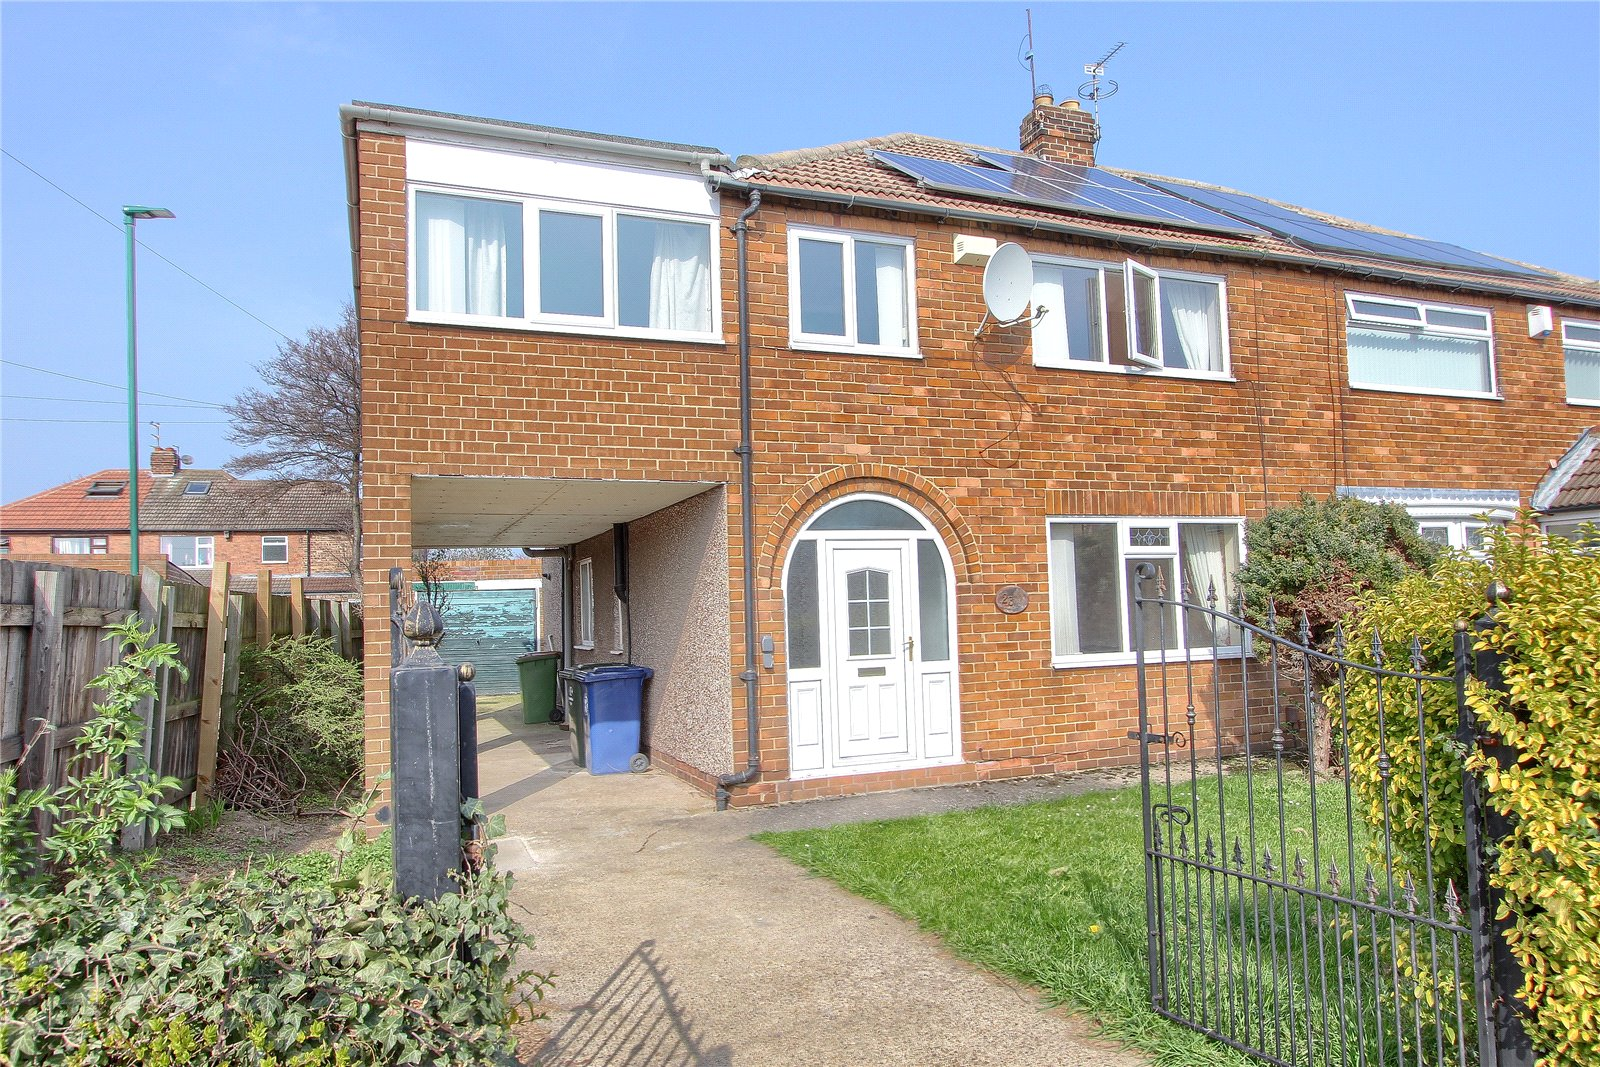 4 bed house for sale in Trent Road, Redcar 1